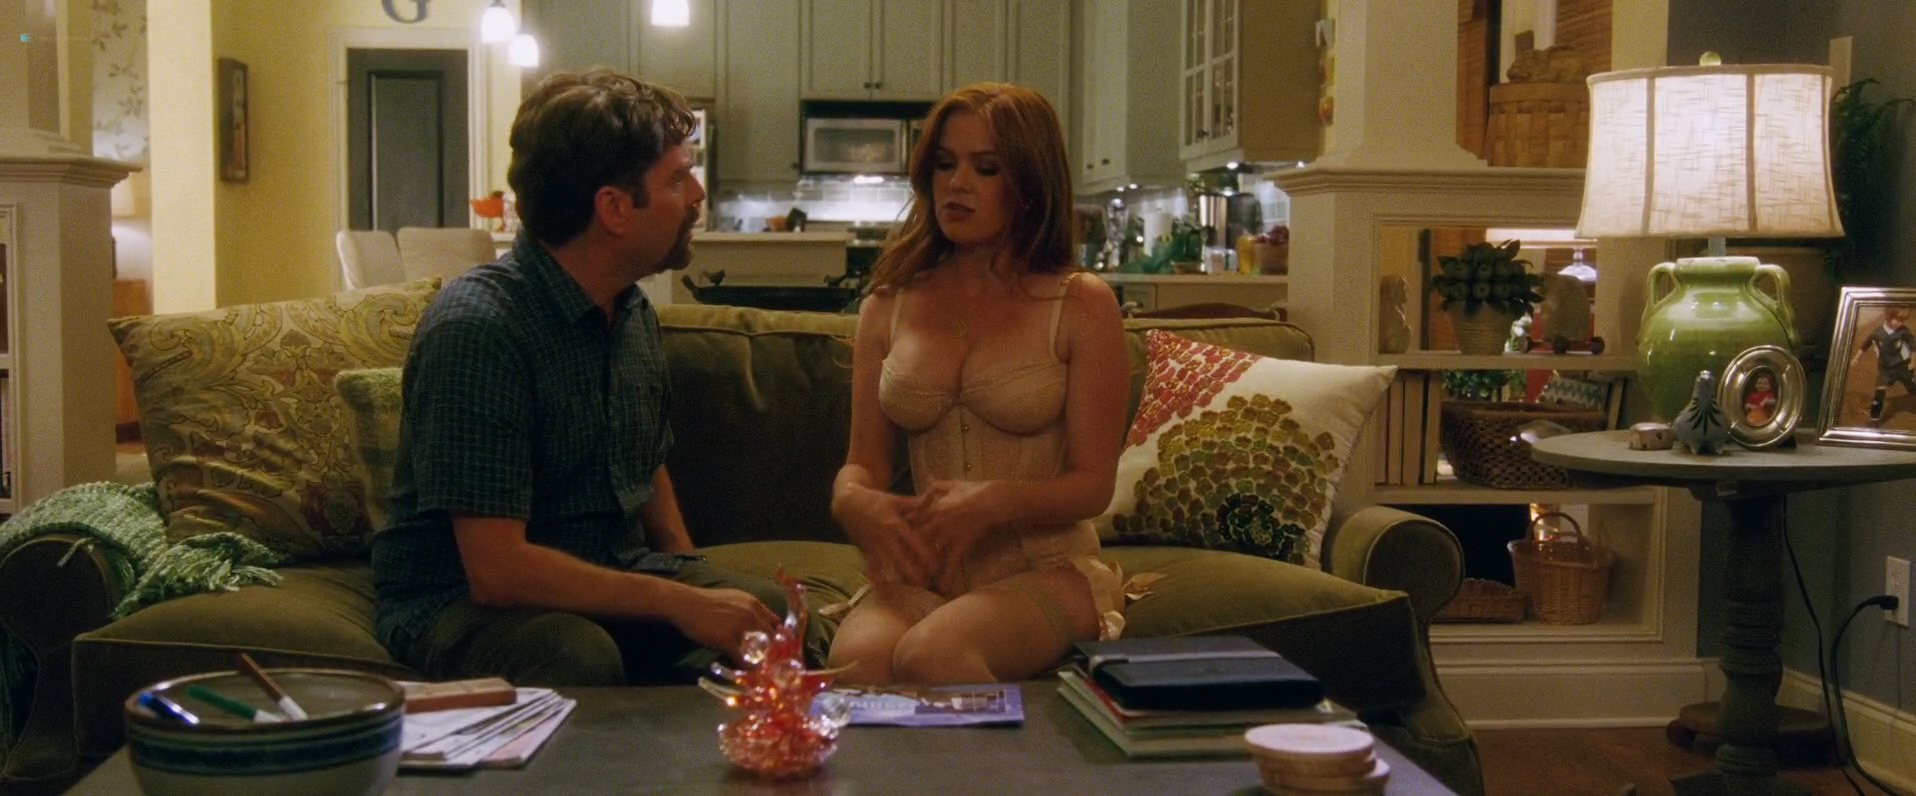 Isla-Fisher-hot-and-sexy-and-Gal-Gadot-hot-in-lingerie-Keeping-Up-with-the-Joneses-2016-HD-1080p-Web-Dl-10.jpg